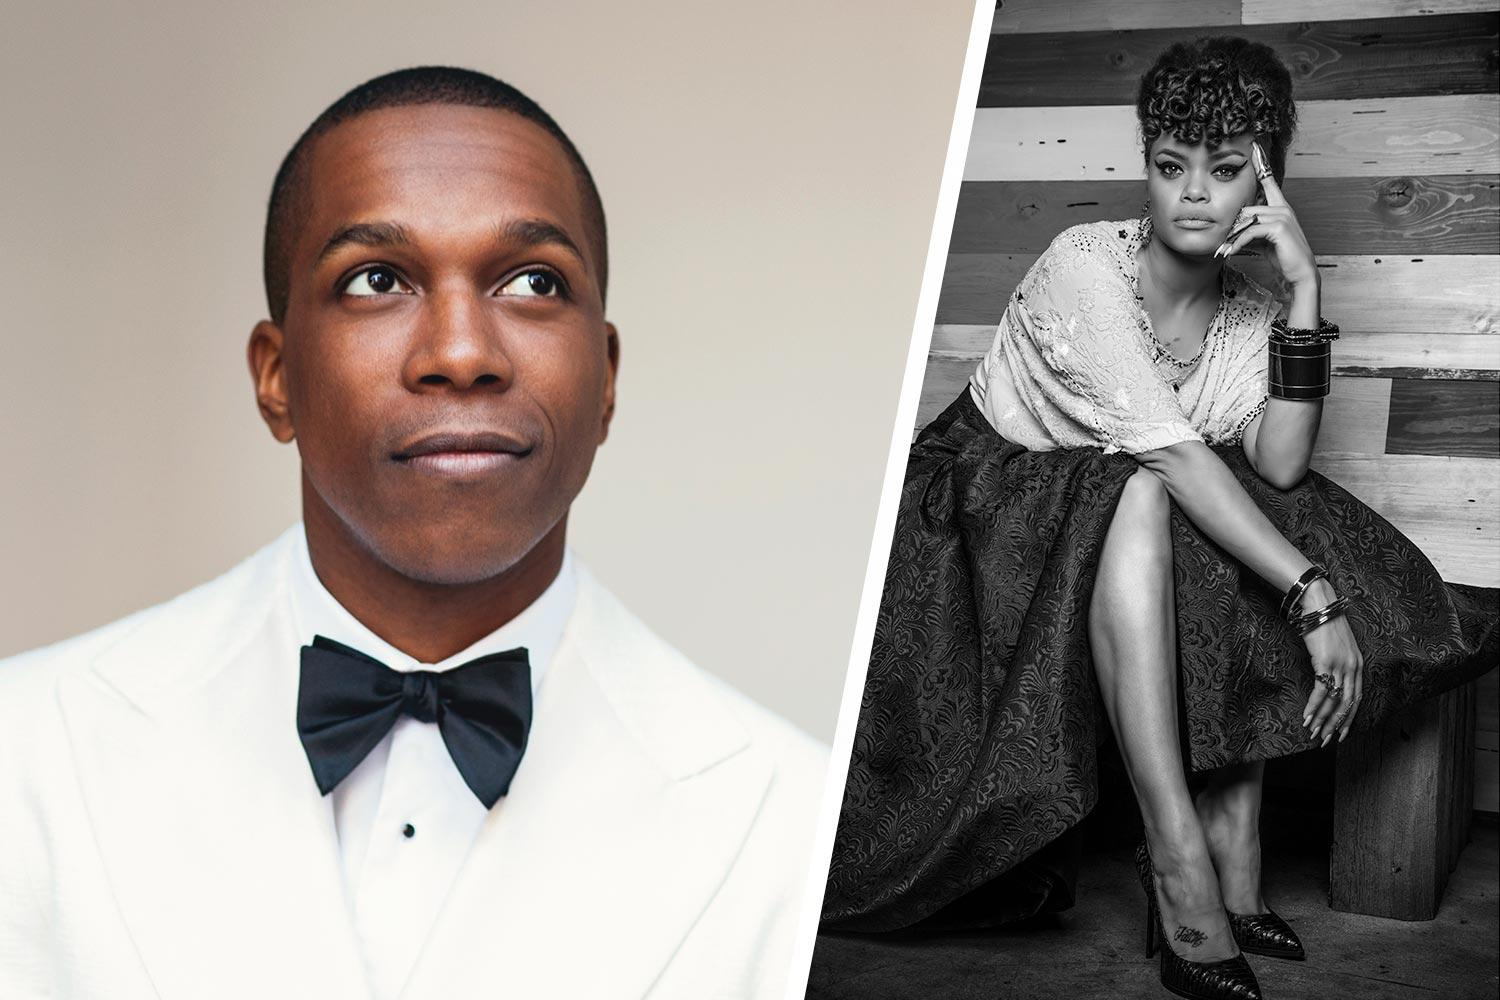 Leslie Odom Jr., left, and Andra Day will perform at the Oct. 6 event on the Lawn.